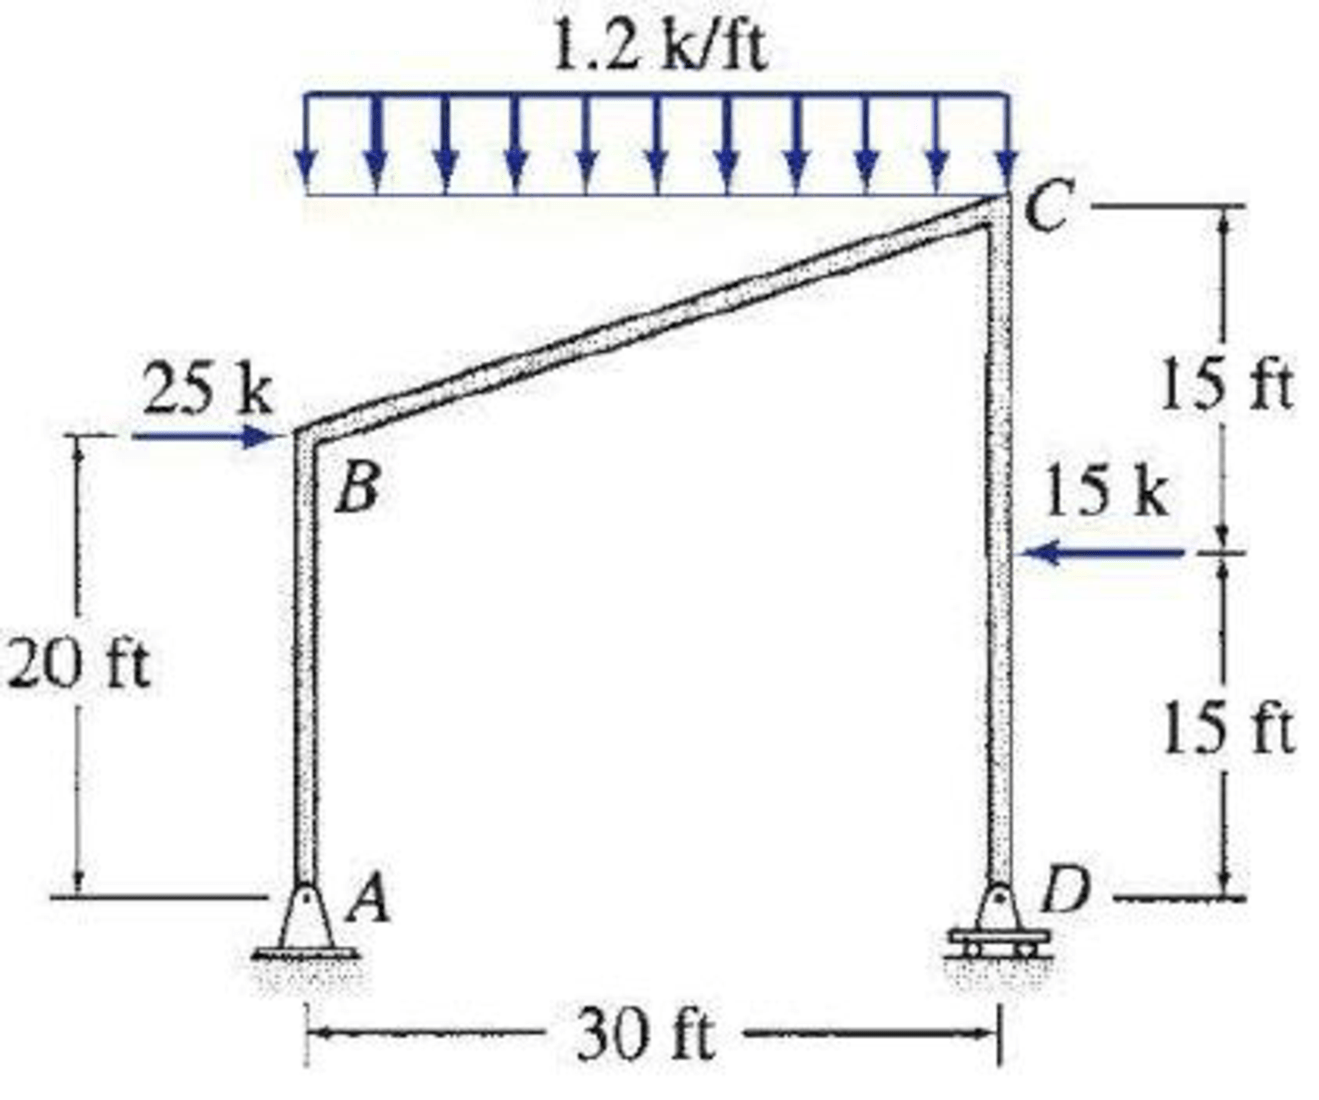 5.57 through 5.71 Draw the shear, bending moment, and